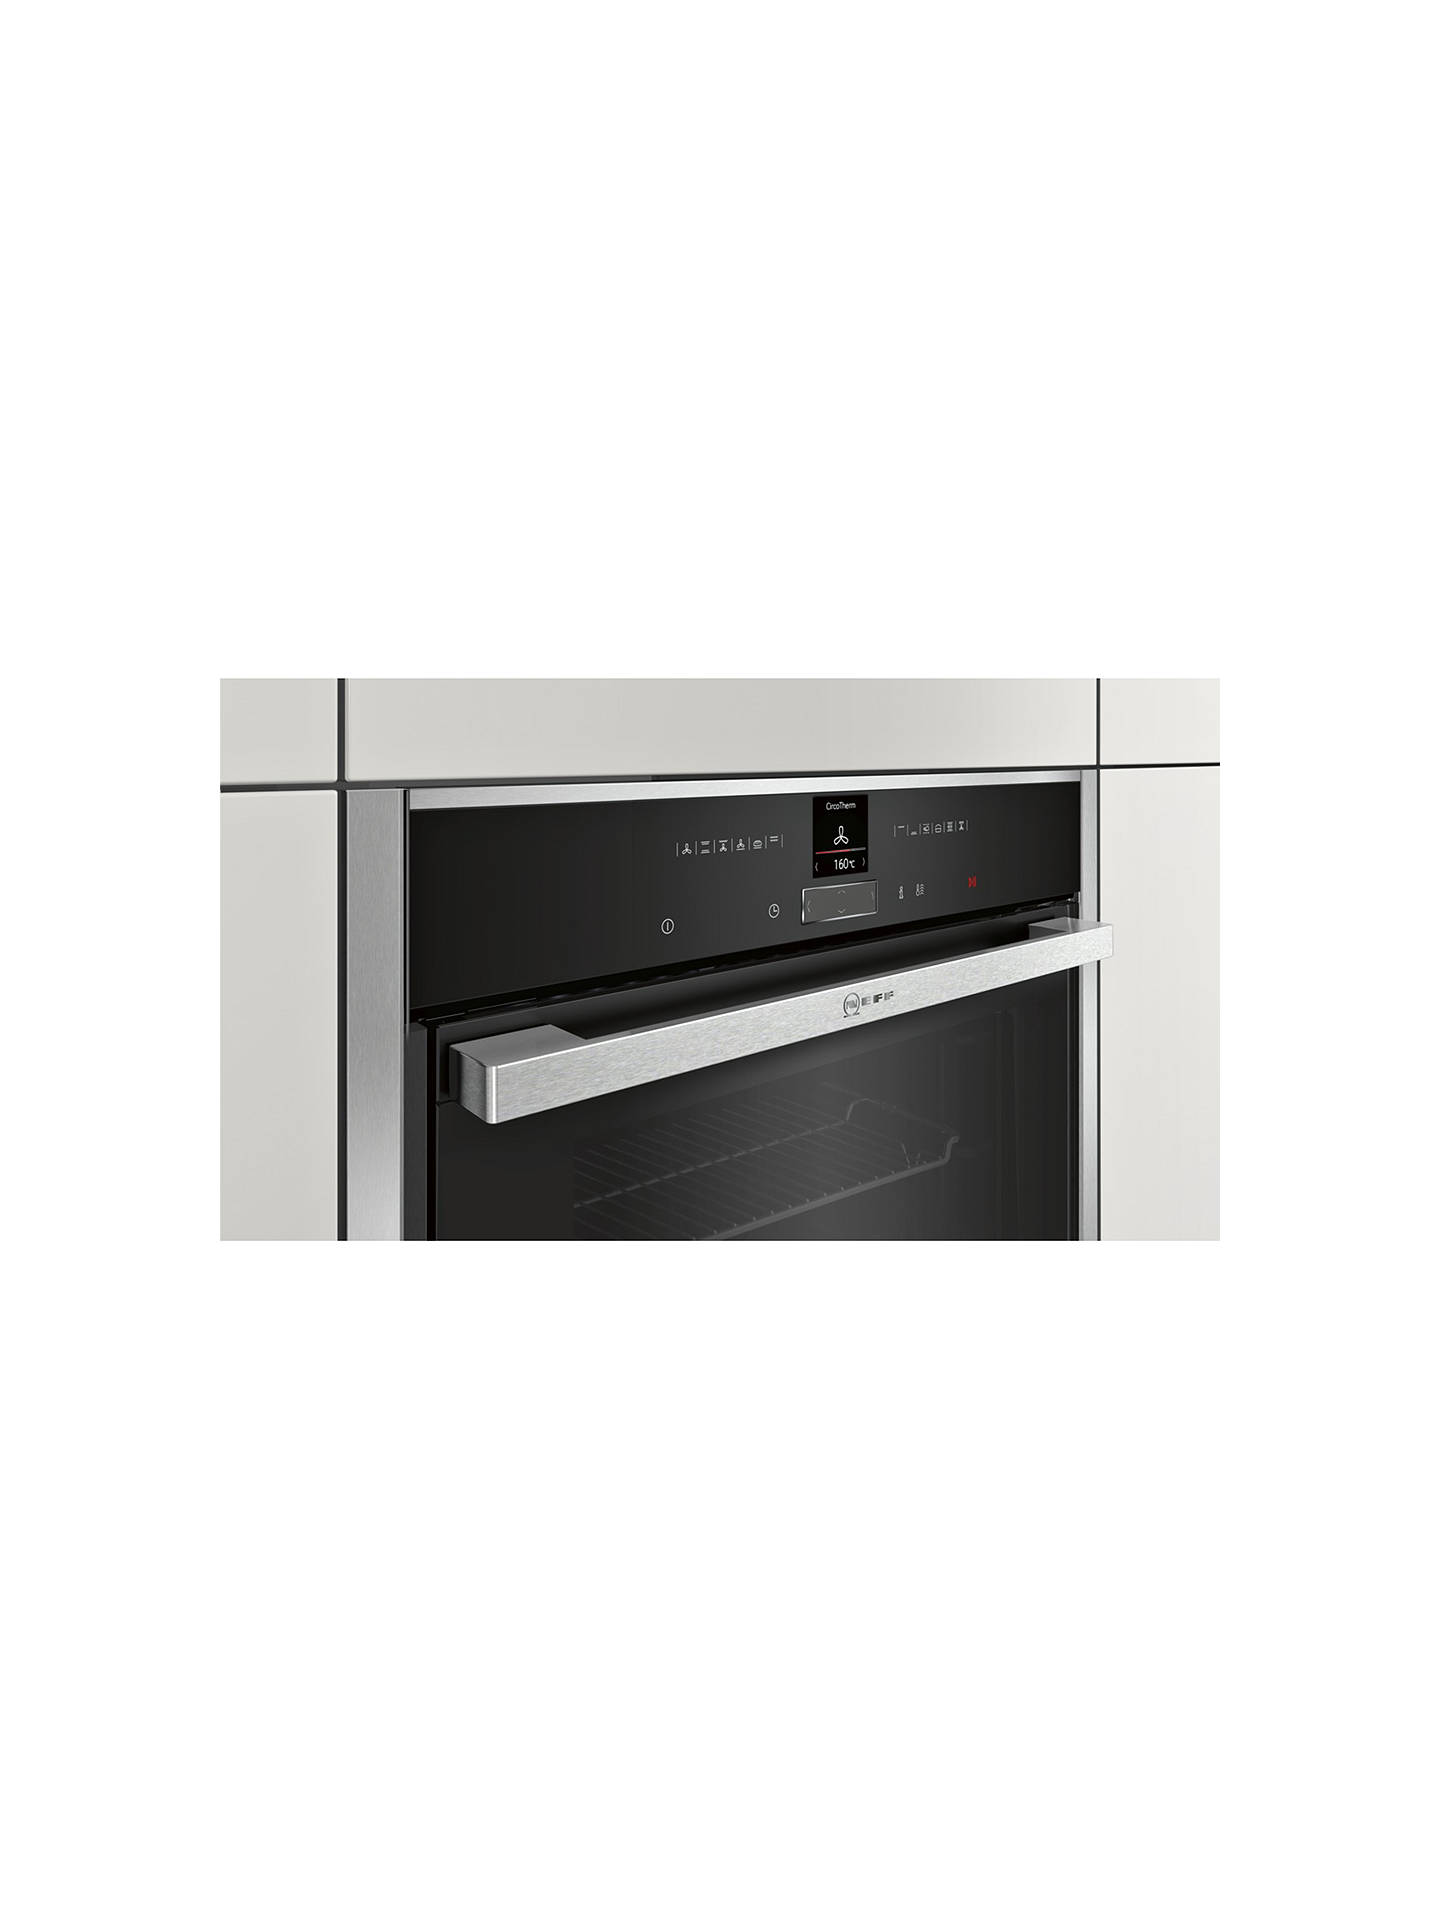 Neff B57cr22n0b Pyrolytic Slide And Hide Single Electric Oven Vehicle Supply Equipment On Without Hard Wiring Buyneff Stainless Steel Online At Johnlewis